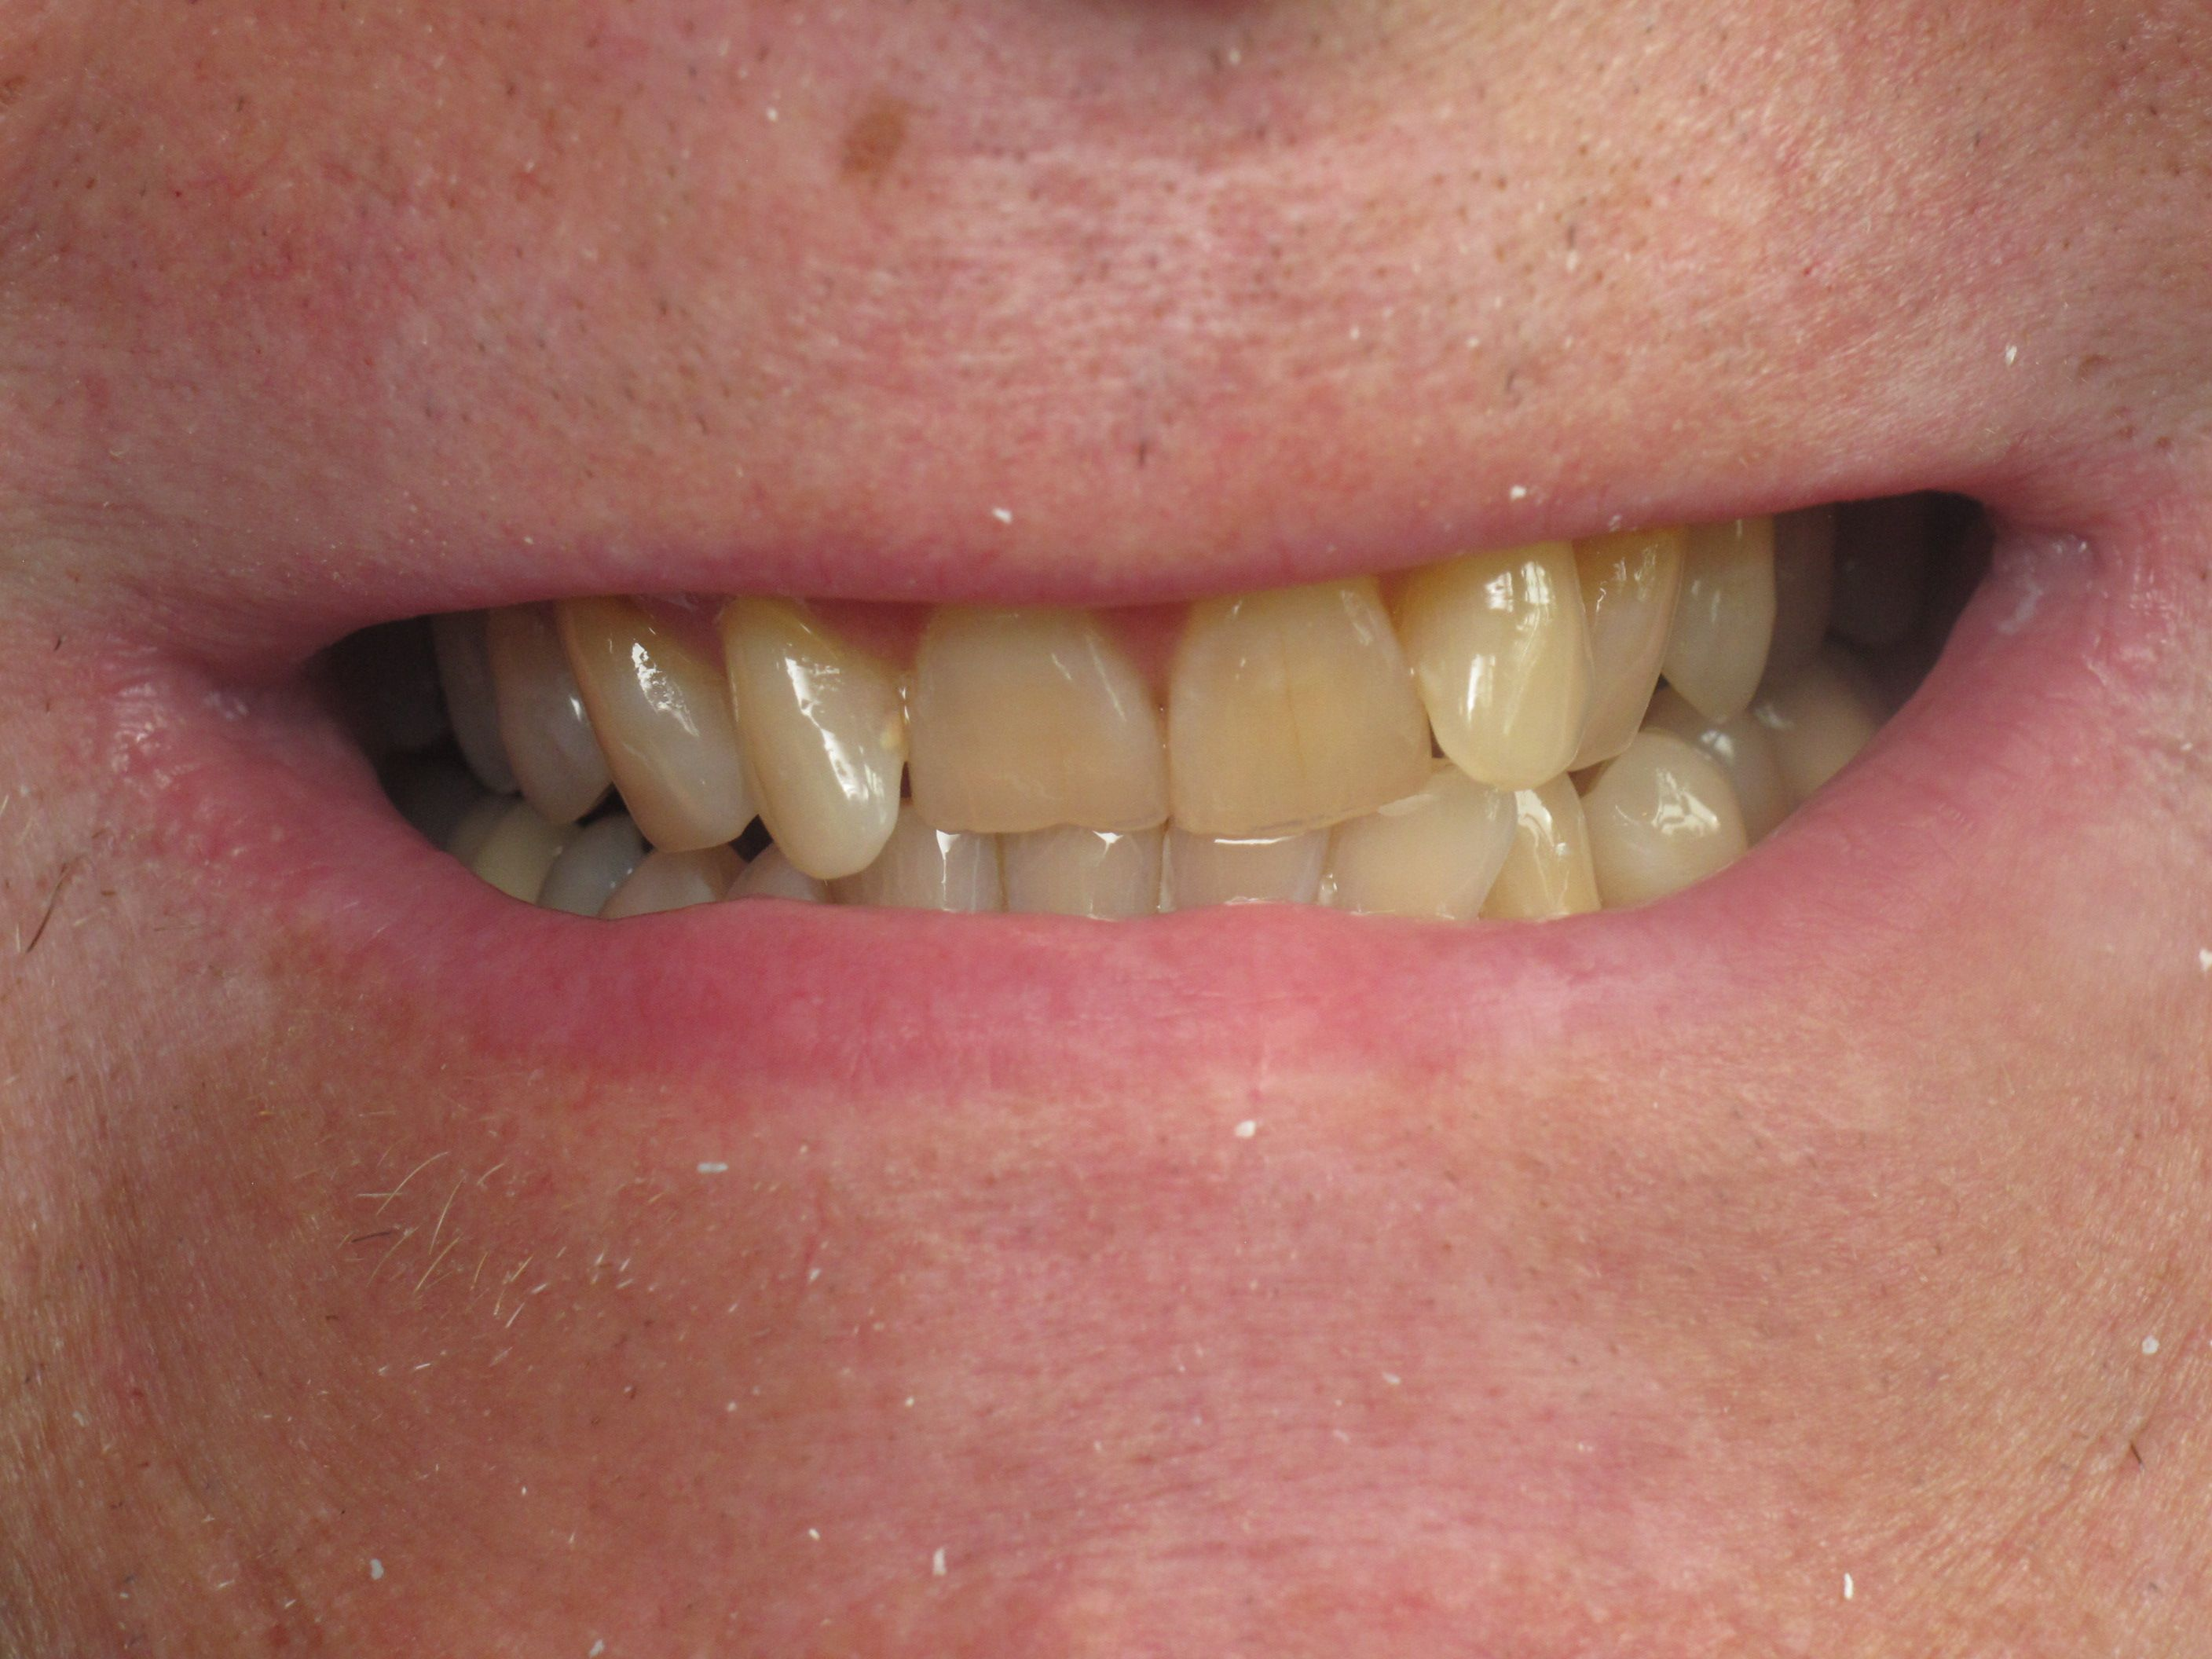 patient with yellow, misshapen teeth